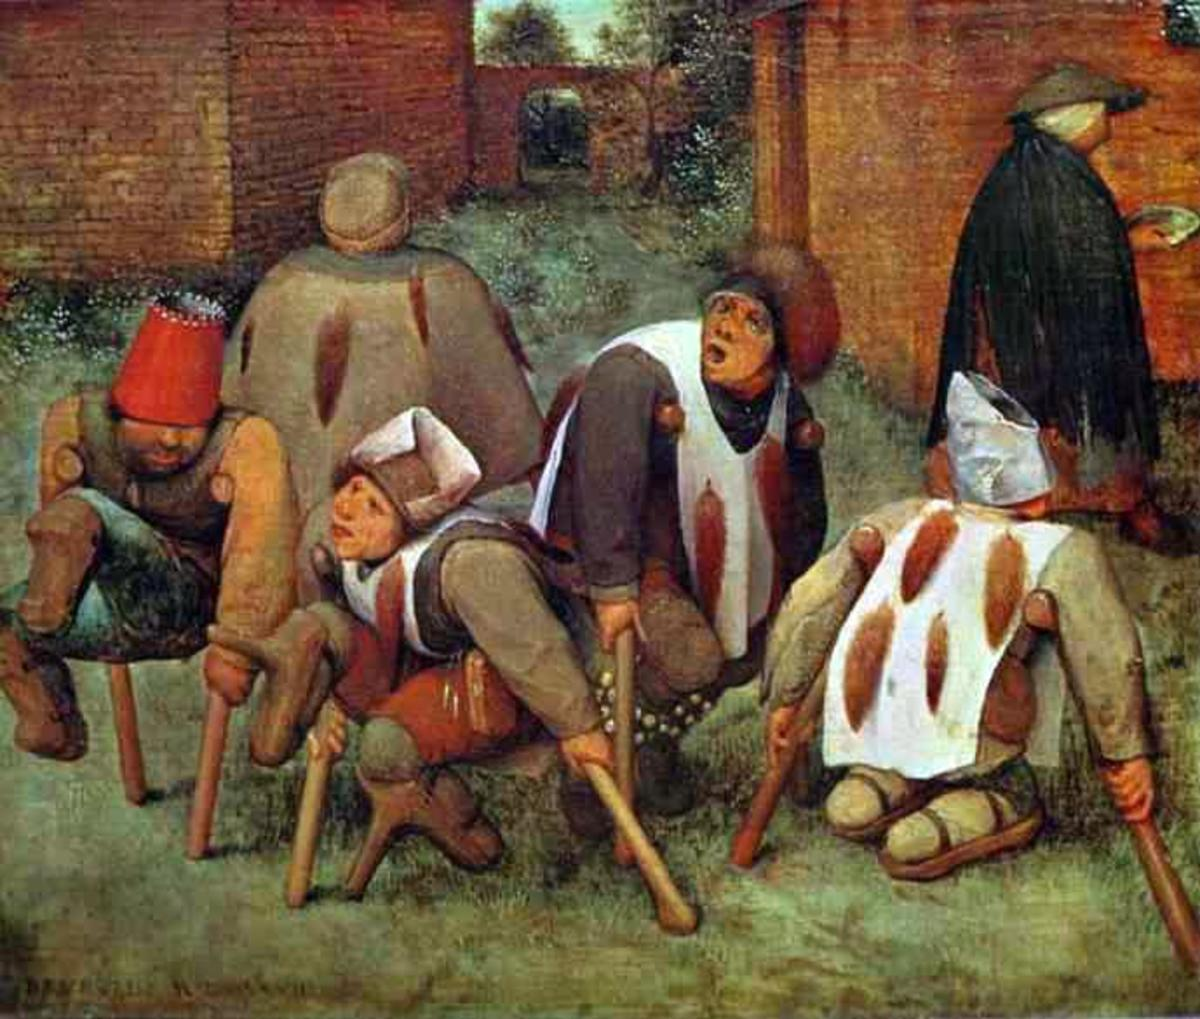 A 16th-century artistic representation of disability.